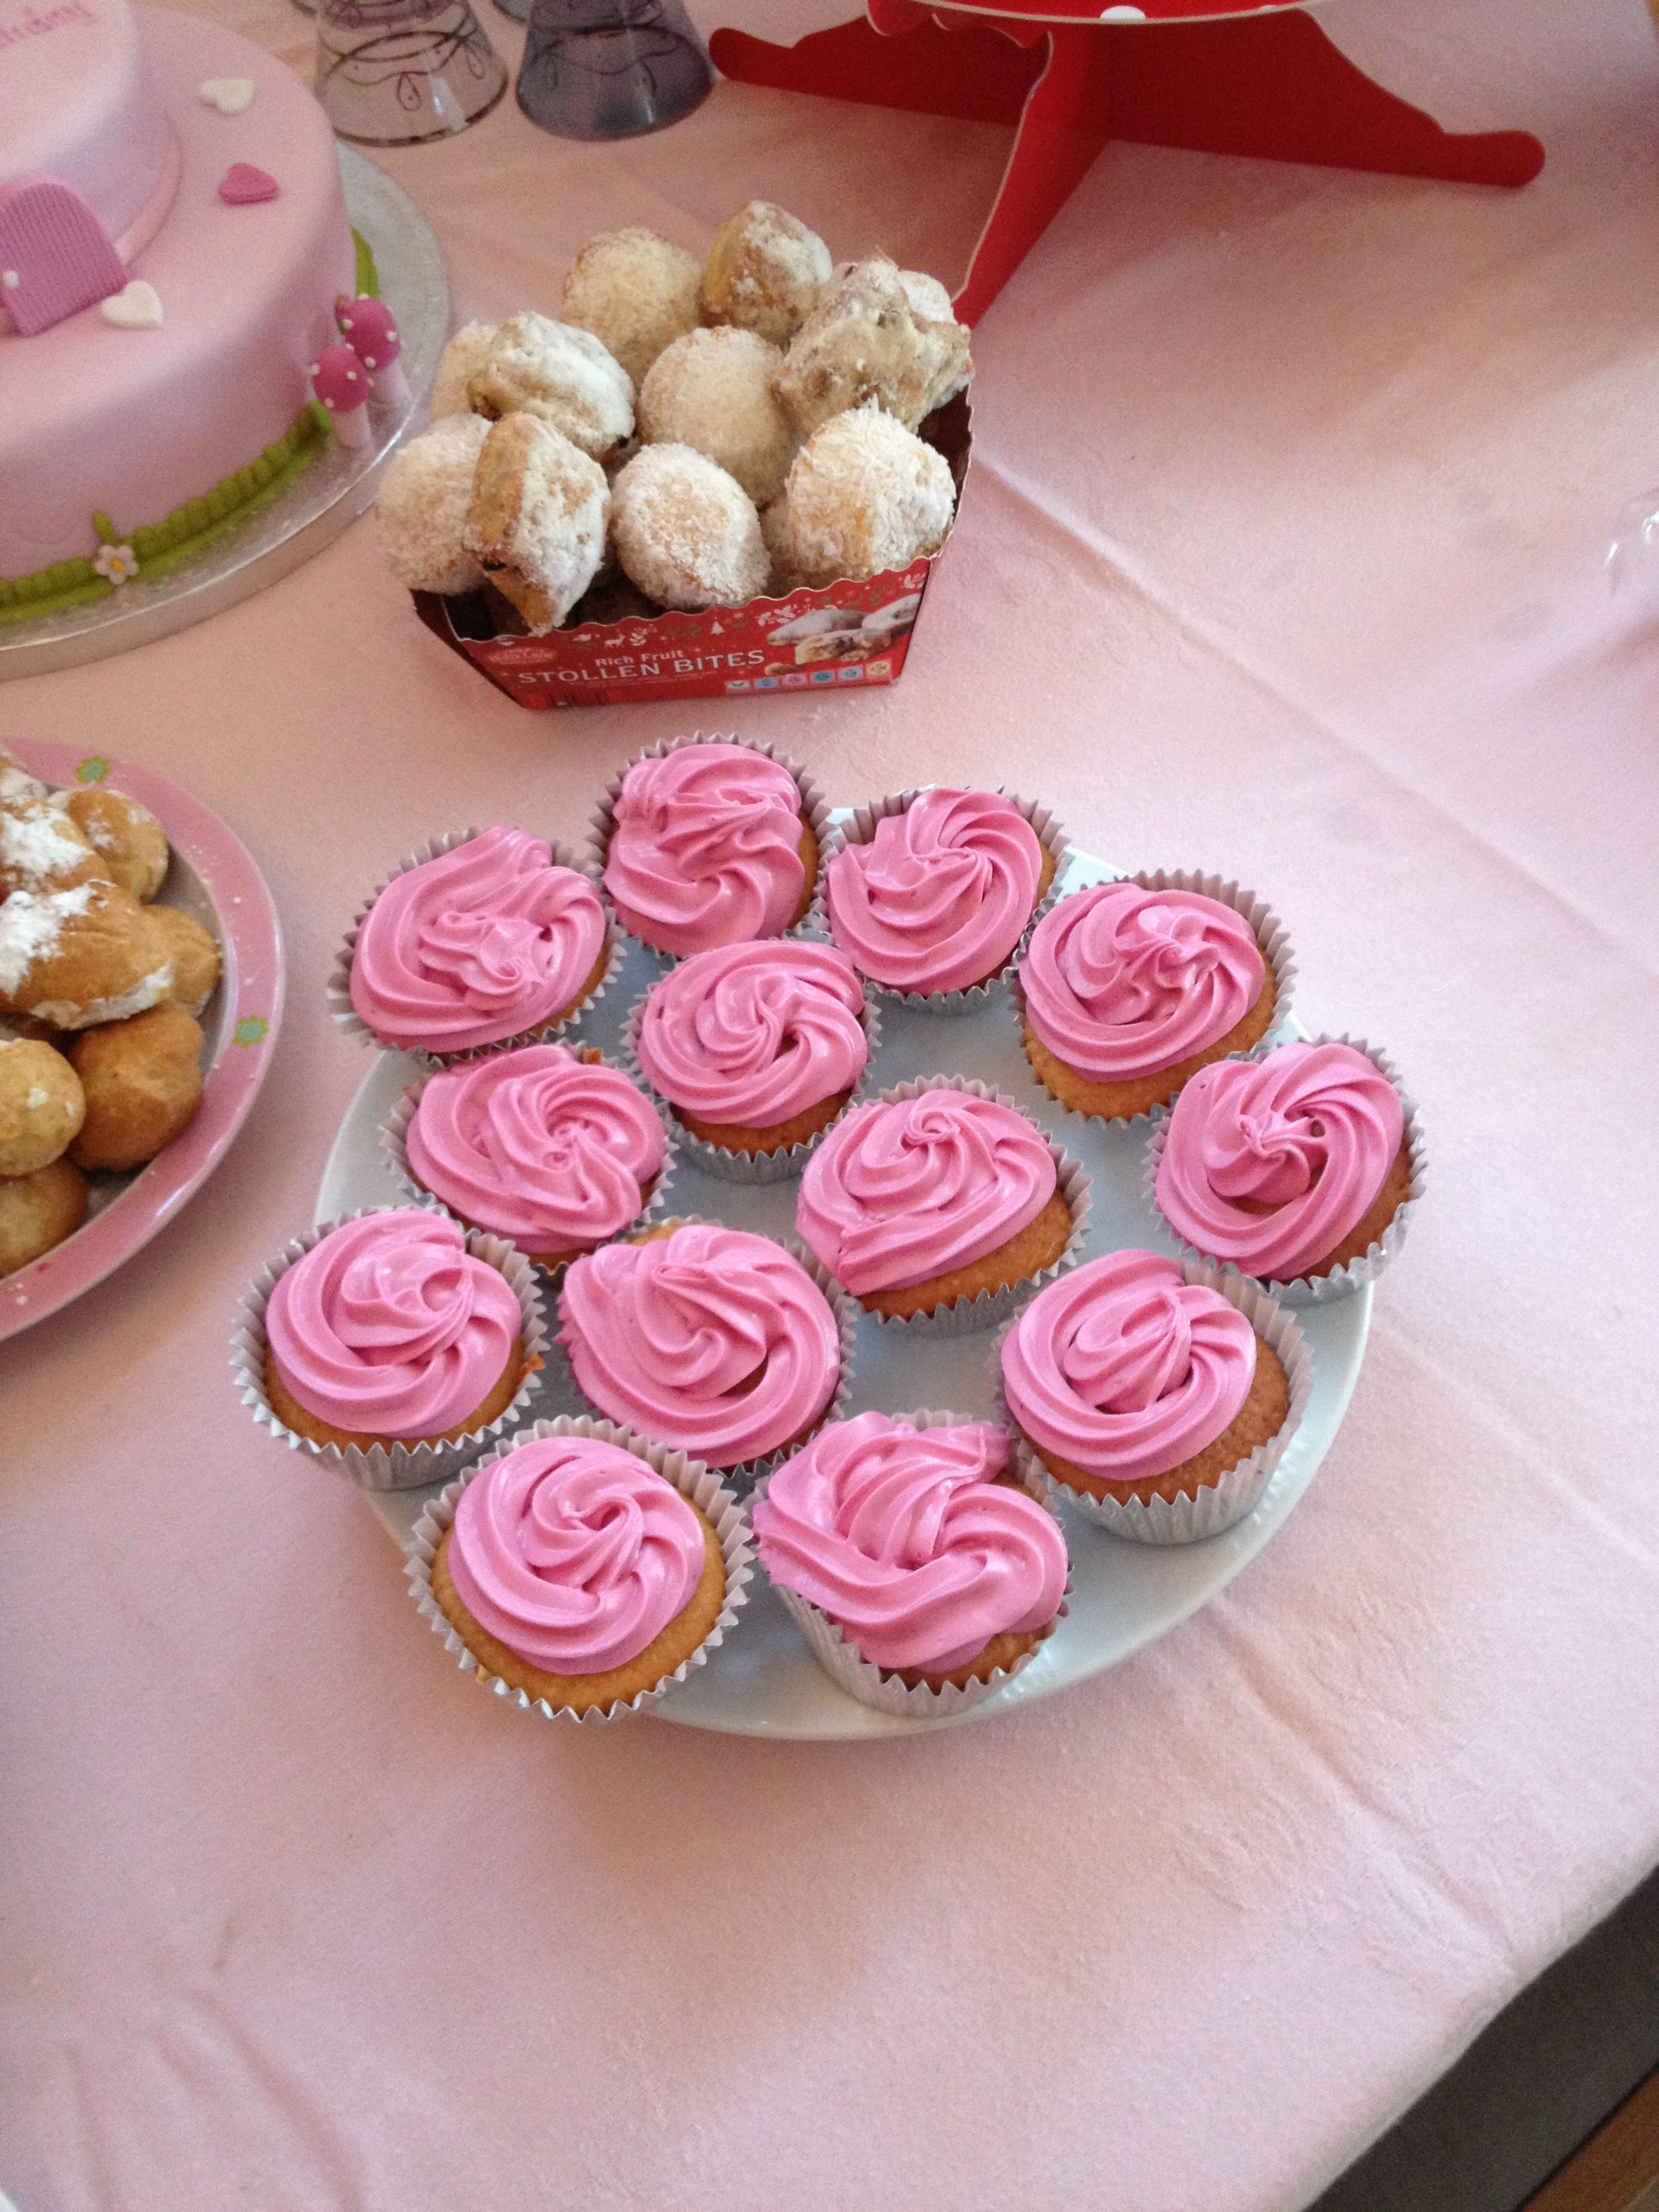 #princess #pink #cupcakes #birthday #girl #tea party #tutu #1st birthday #buttercream #coconut #yummy #party food #food table